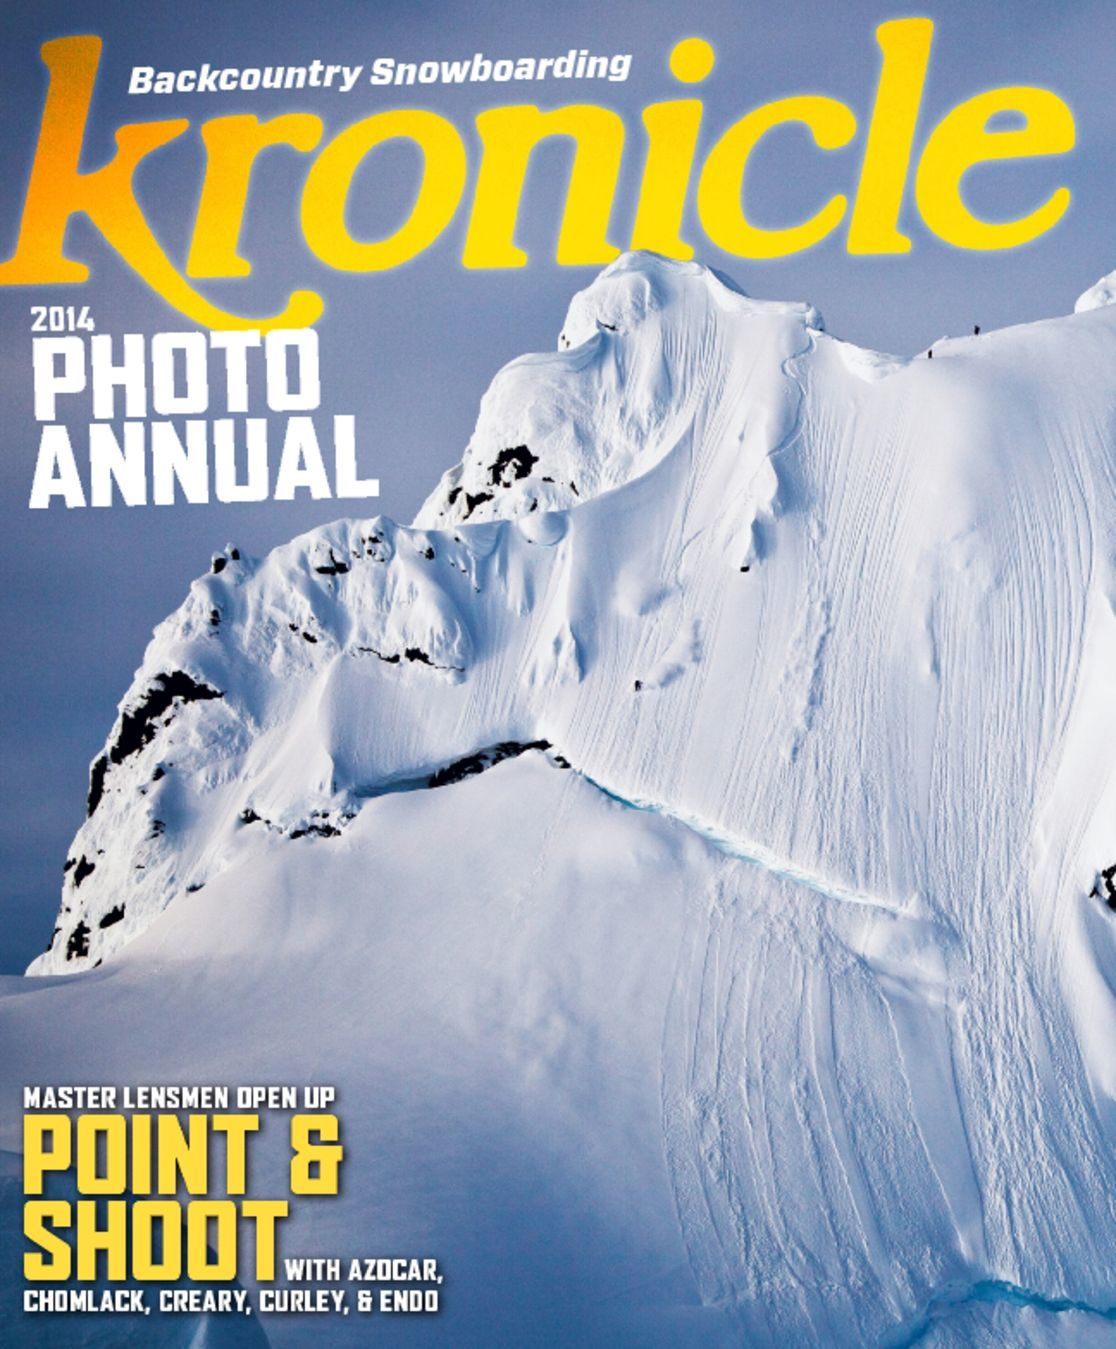 Kronicle Backcountry Snowboarding Digital